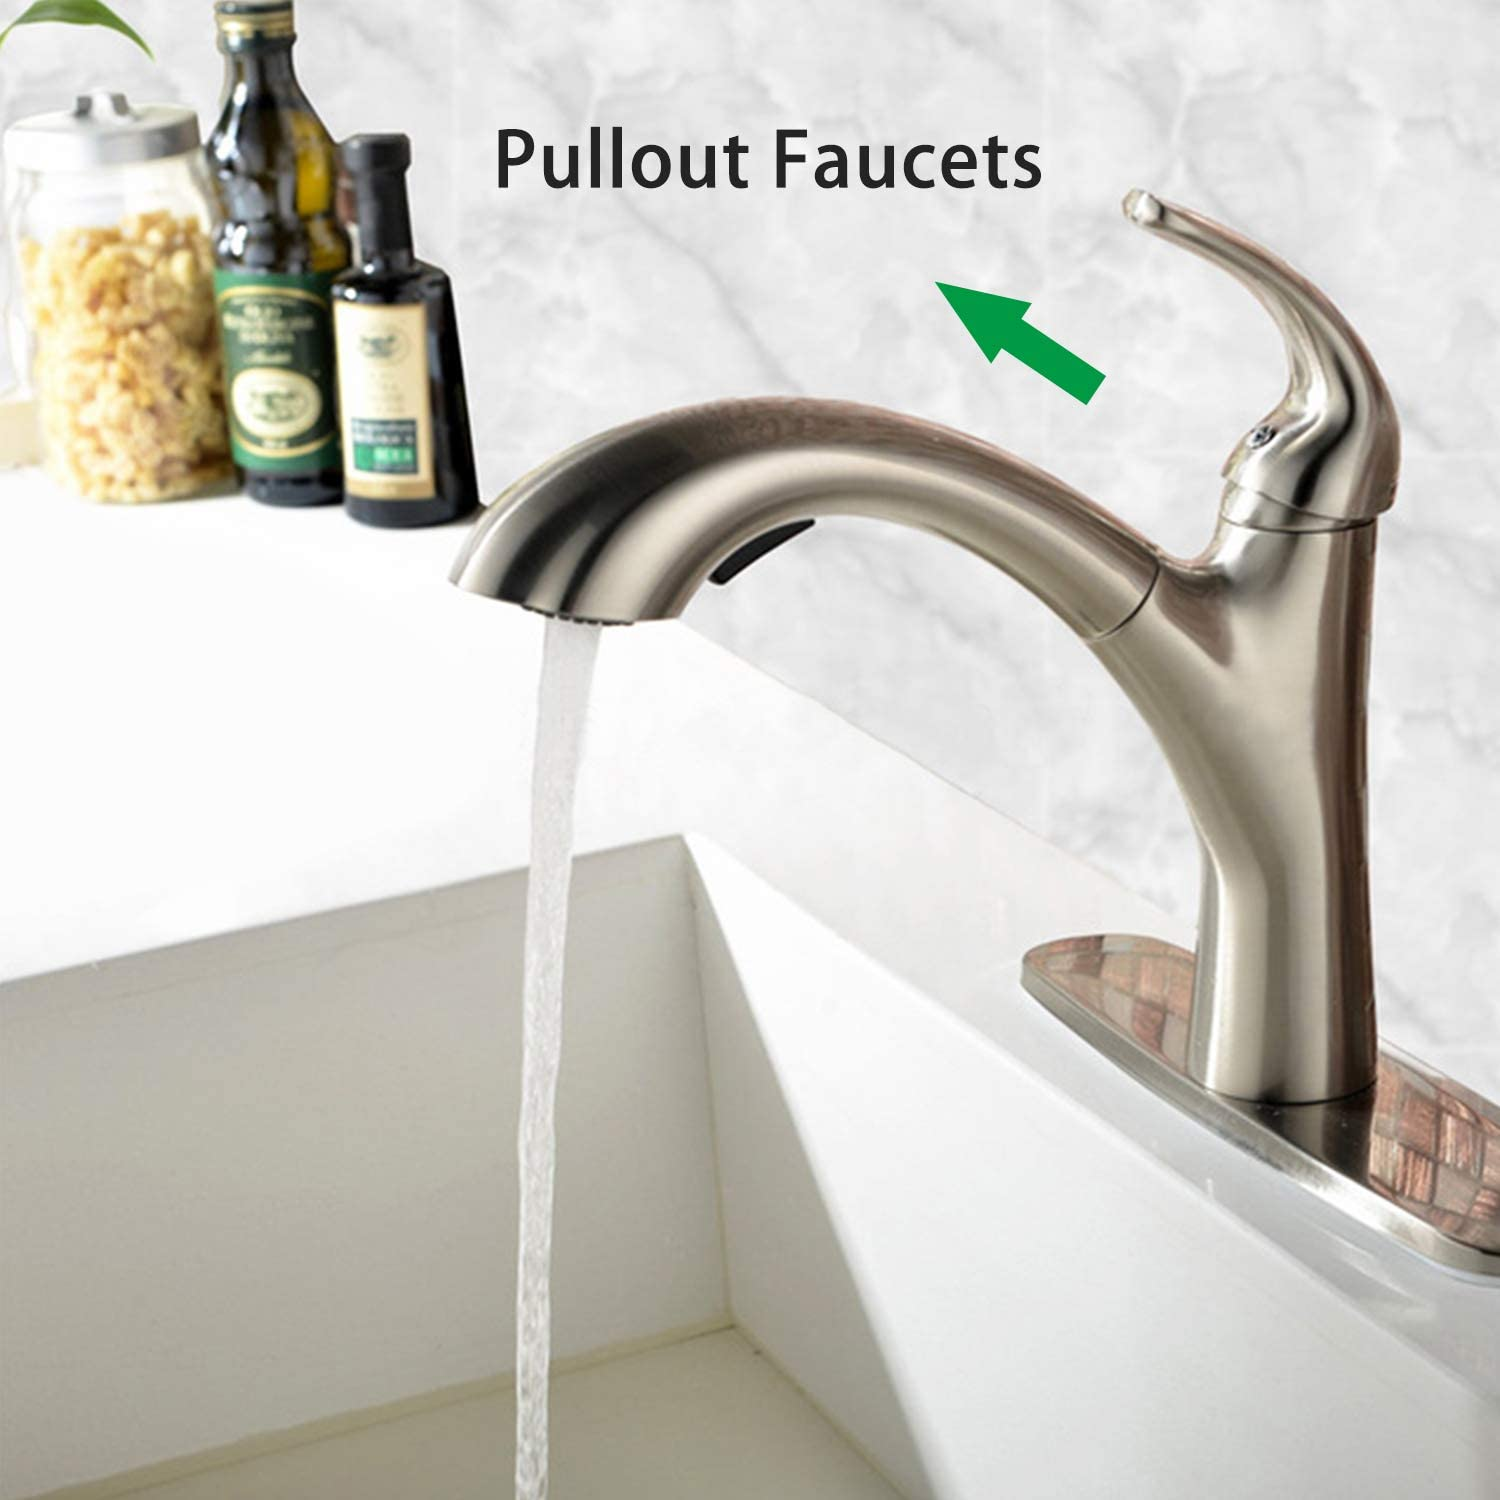 Buy Replacement Hose Kit For Moen Kitchen Faucets Pullout 159560 Online In Vietnam B07q265hc3